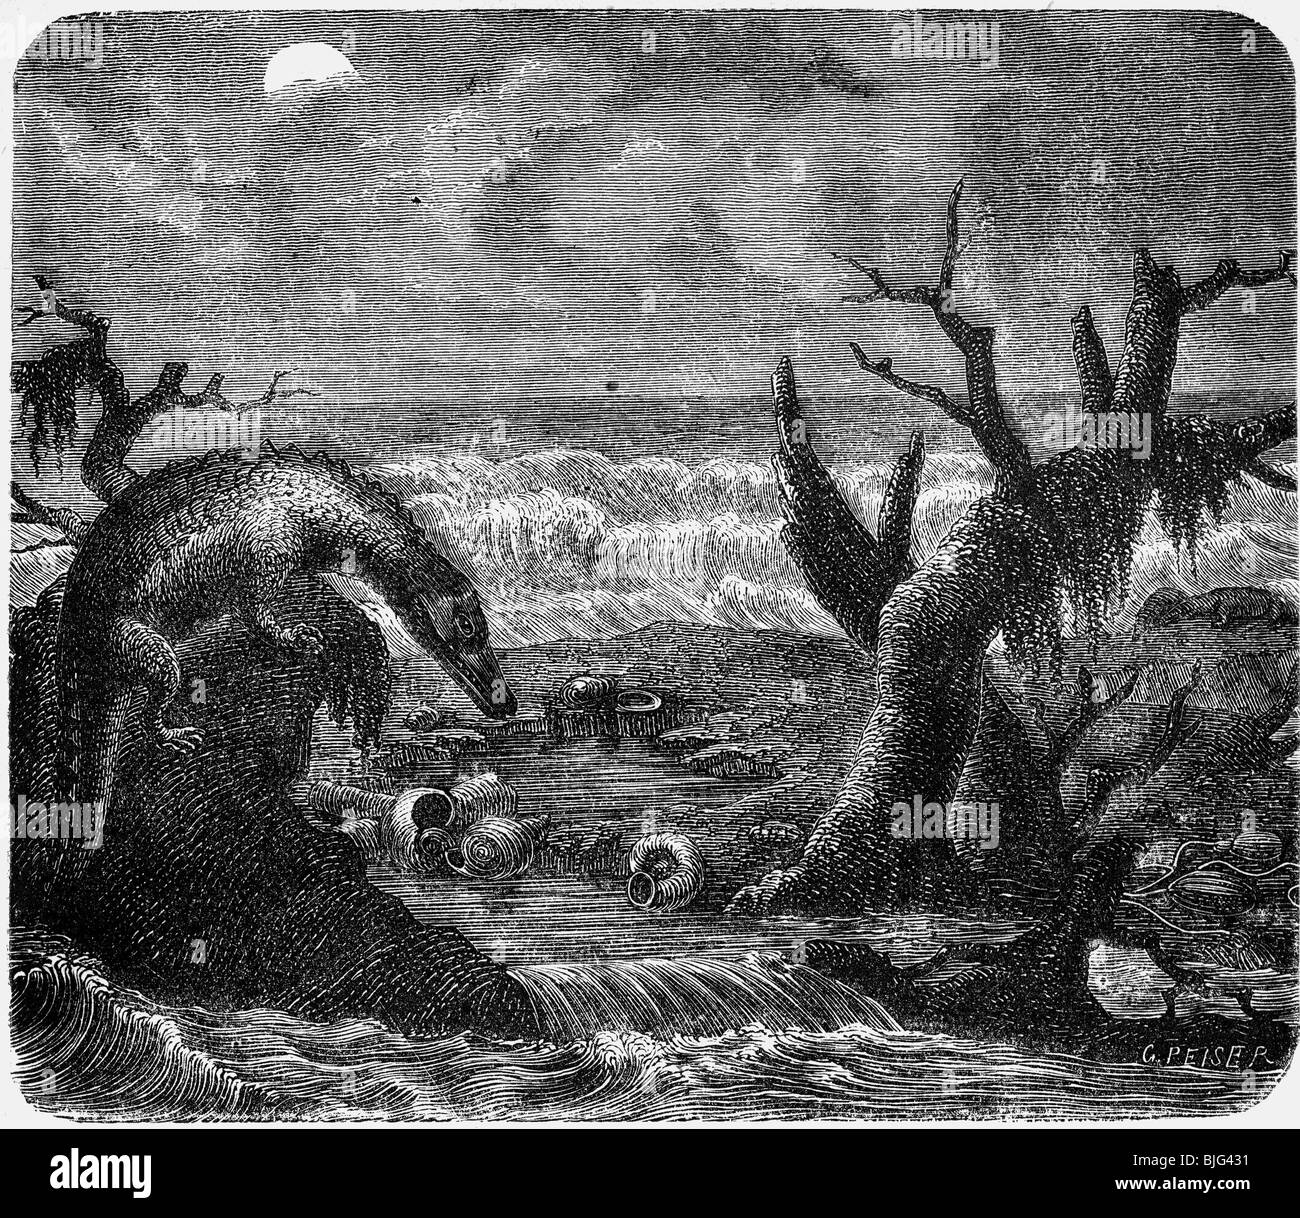 prehistory, animals, Nothosaur in a Triassic beach landscape, illustration, wood engraving, circa 1870, Additional - Stock Image